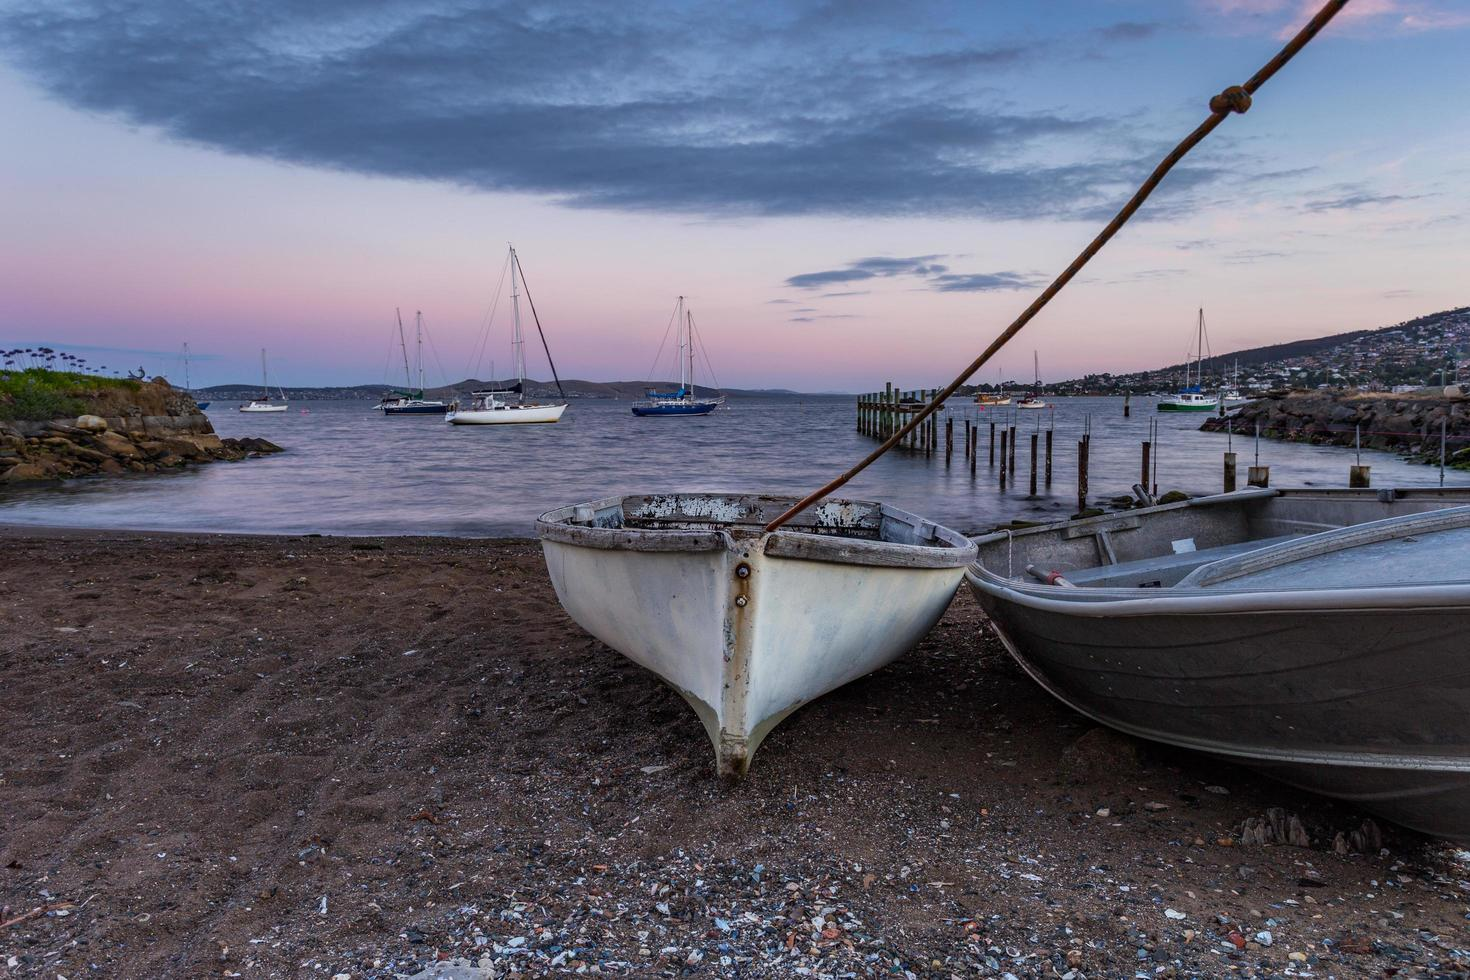 Boats on sand and in water photo